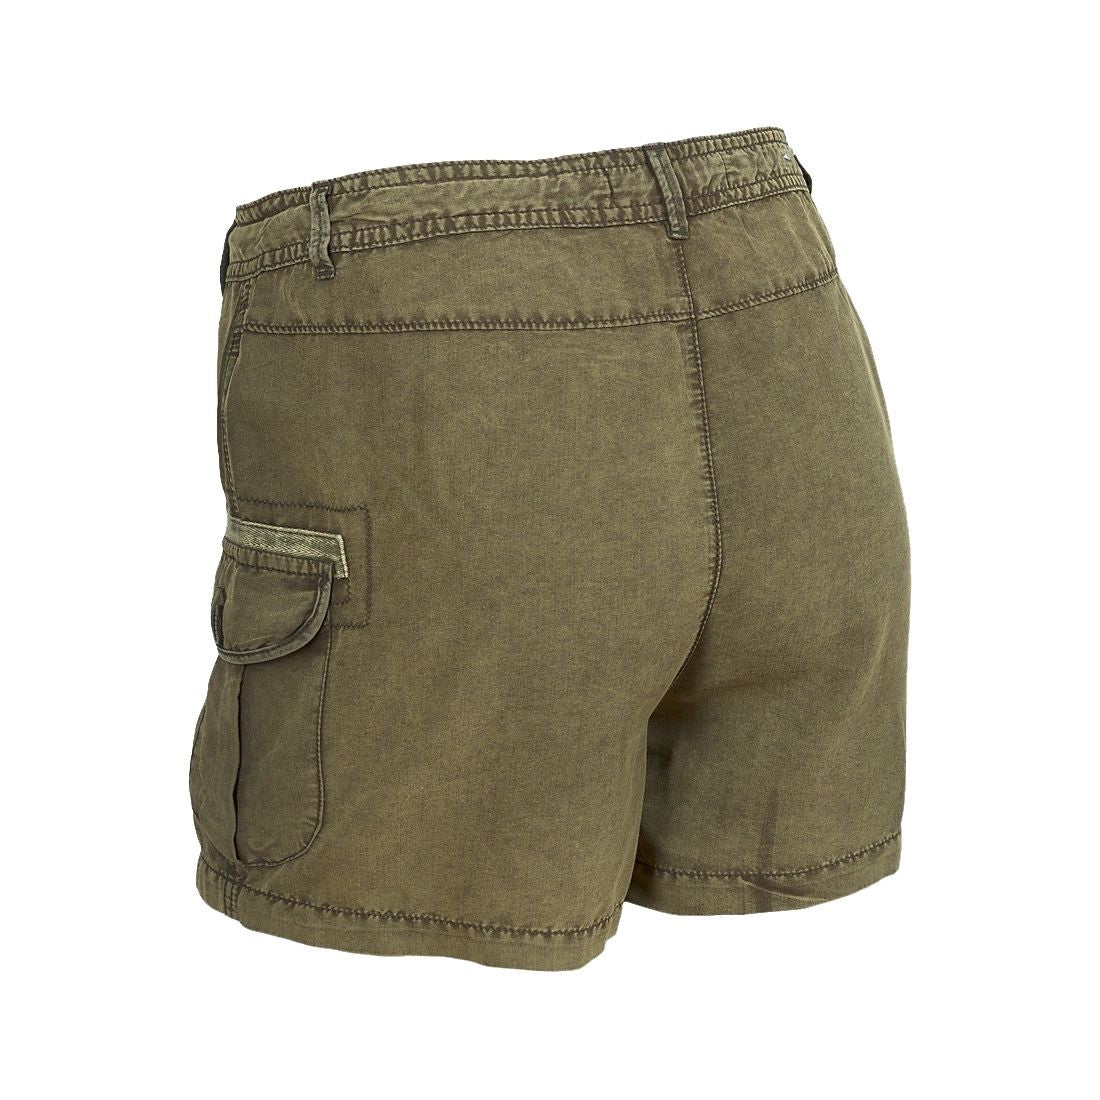 Sebix - Olive Green Khaki Combat Summer Shorts Hot Pants - Back